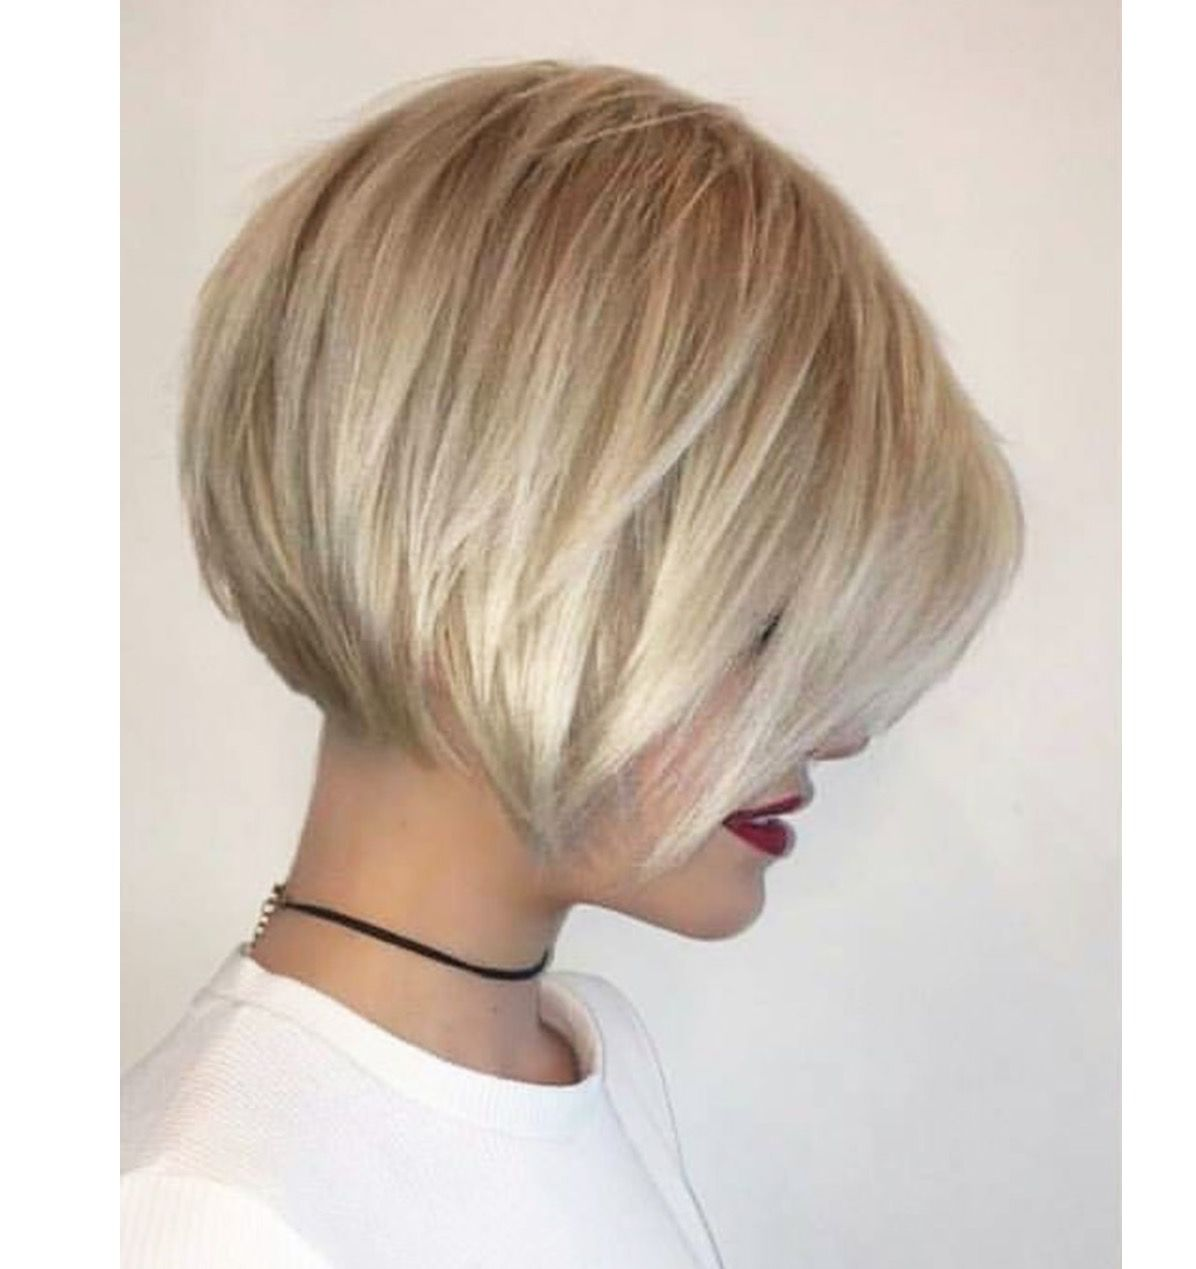 Pin by graziella on coiffure pinterest hair style bobs and haircuts